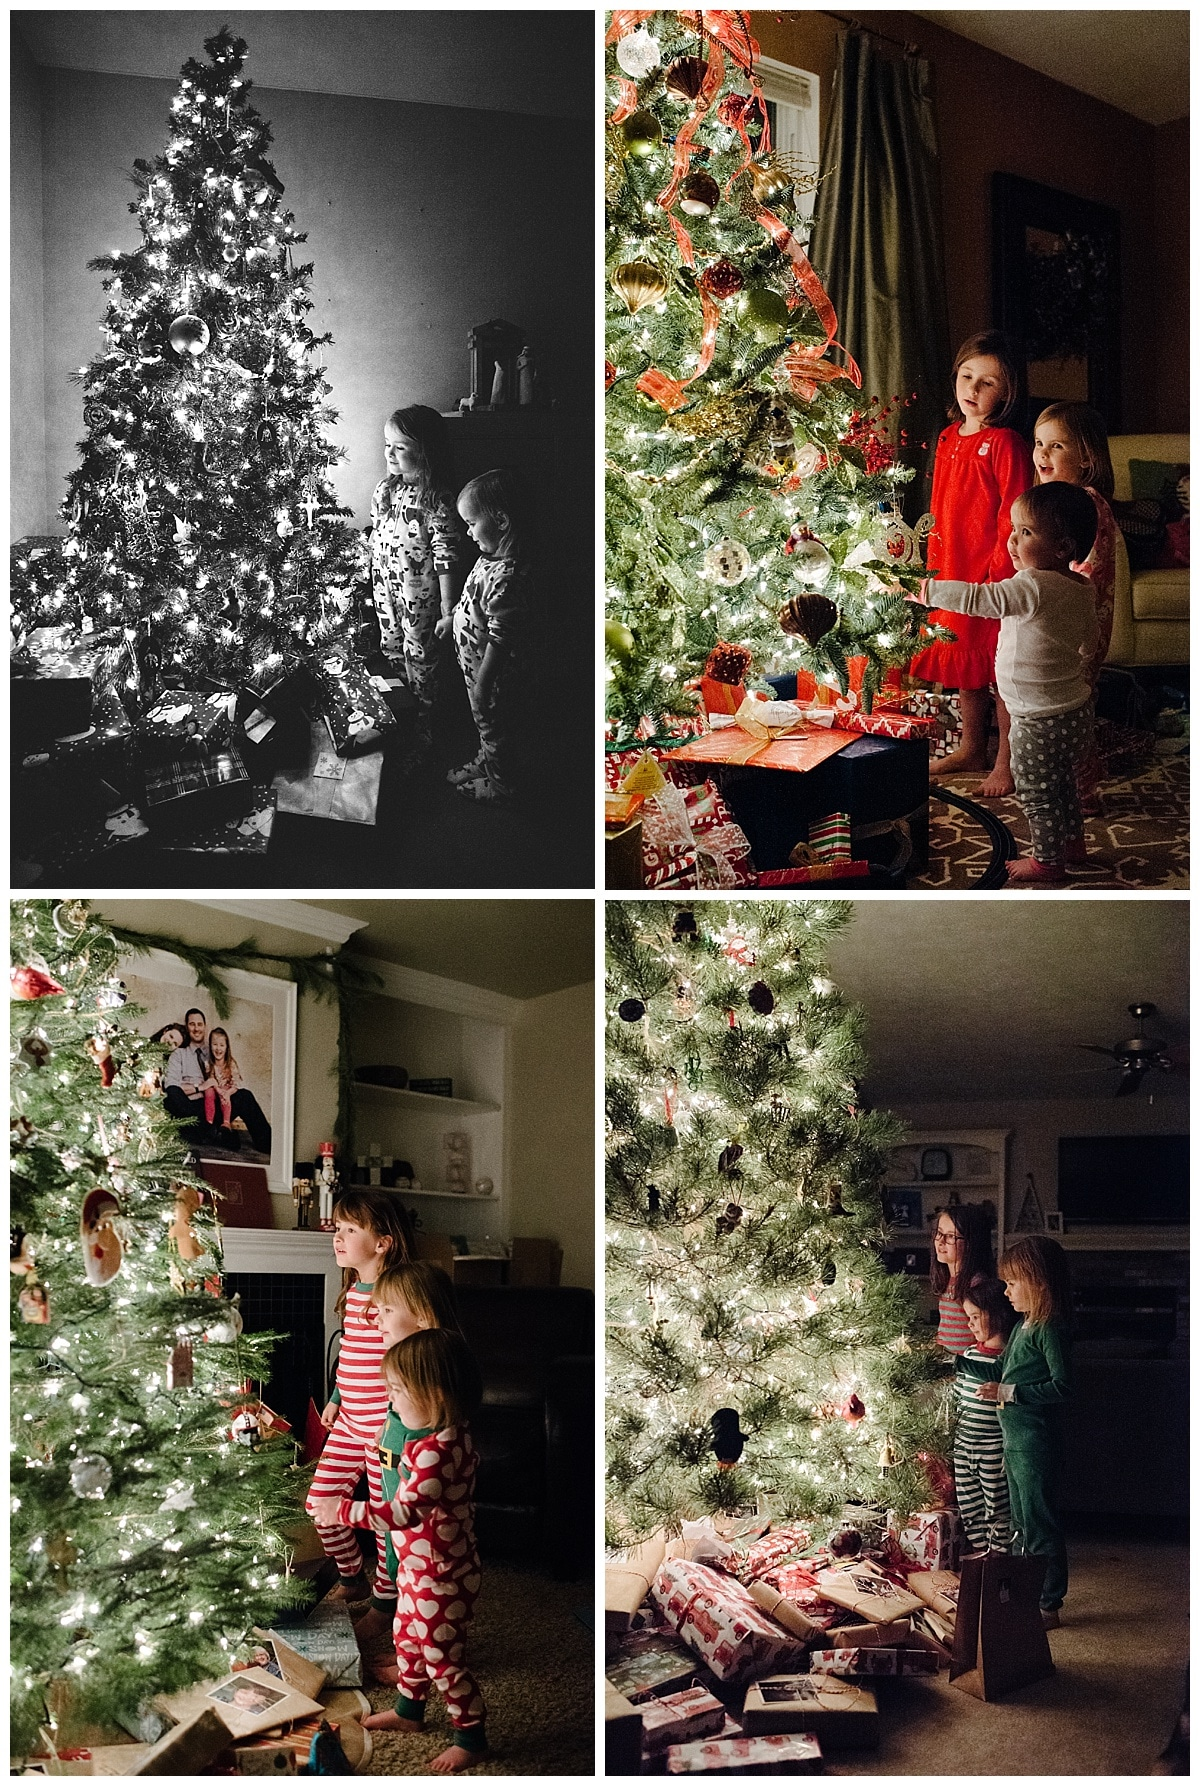 Start a new Christmas photo tradition. In 5 simple steps, you can photograph your children by the light of the Christmas tree. This is a perfect way to photograph Christmas and capture the magic.